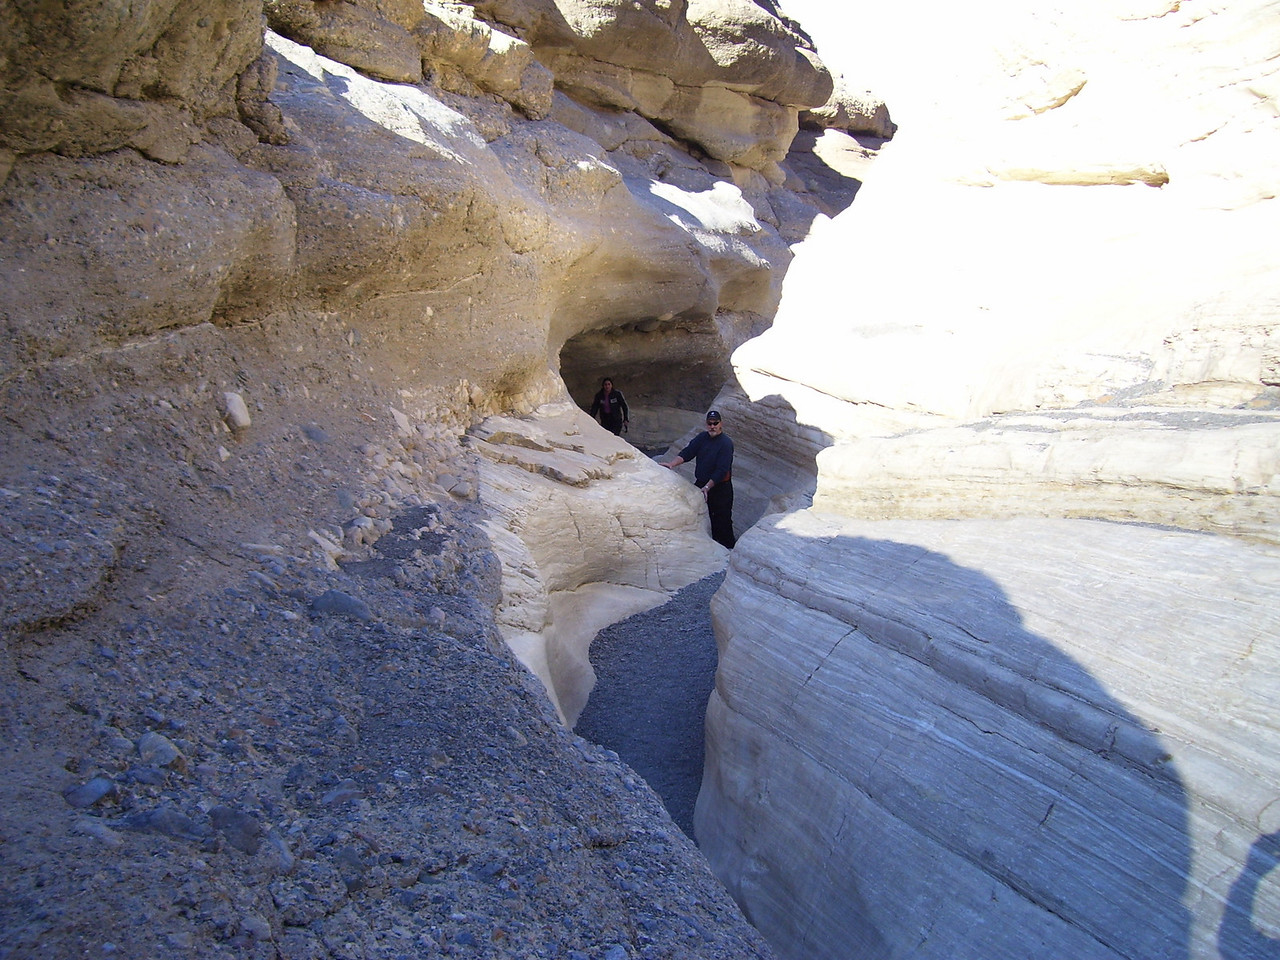 Mosaic Canyon is a must see! Very beautiful.